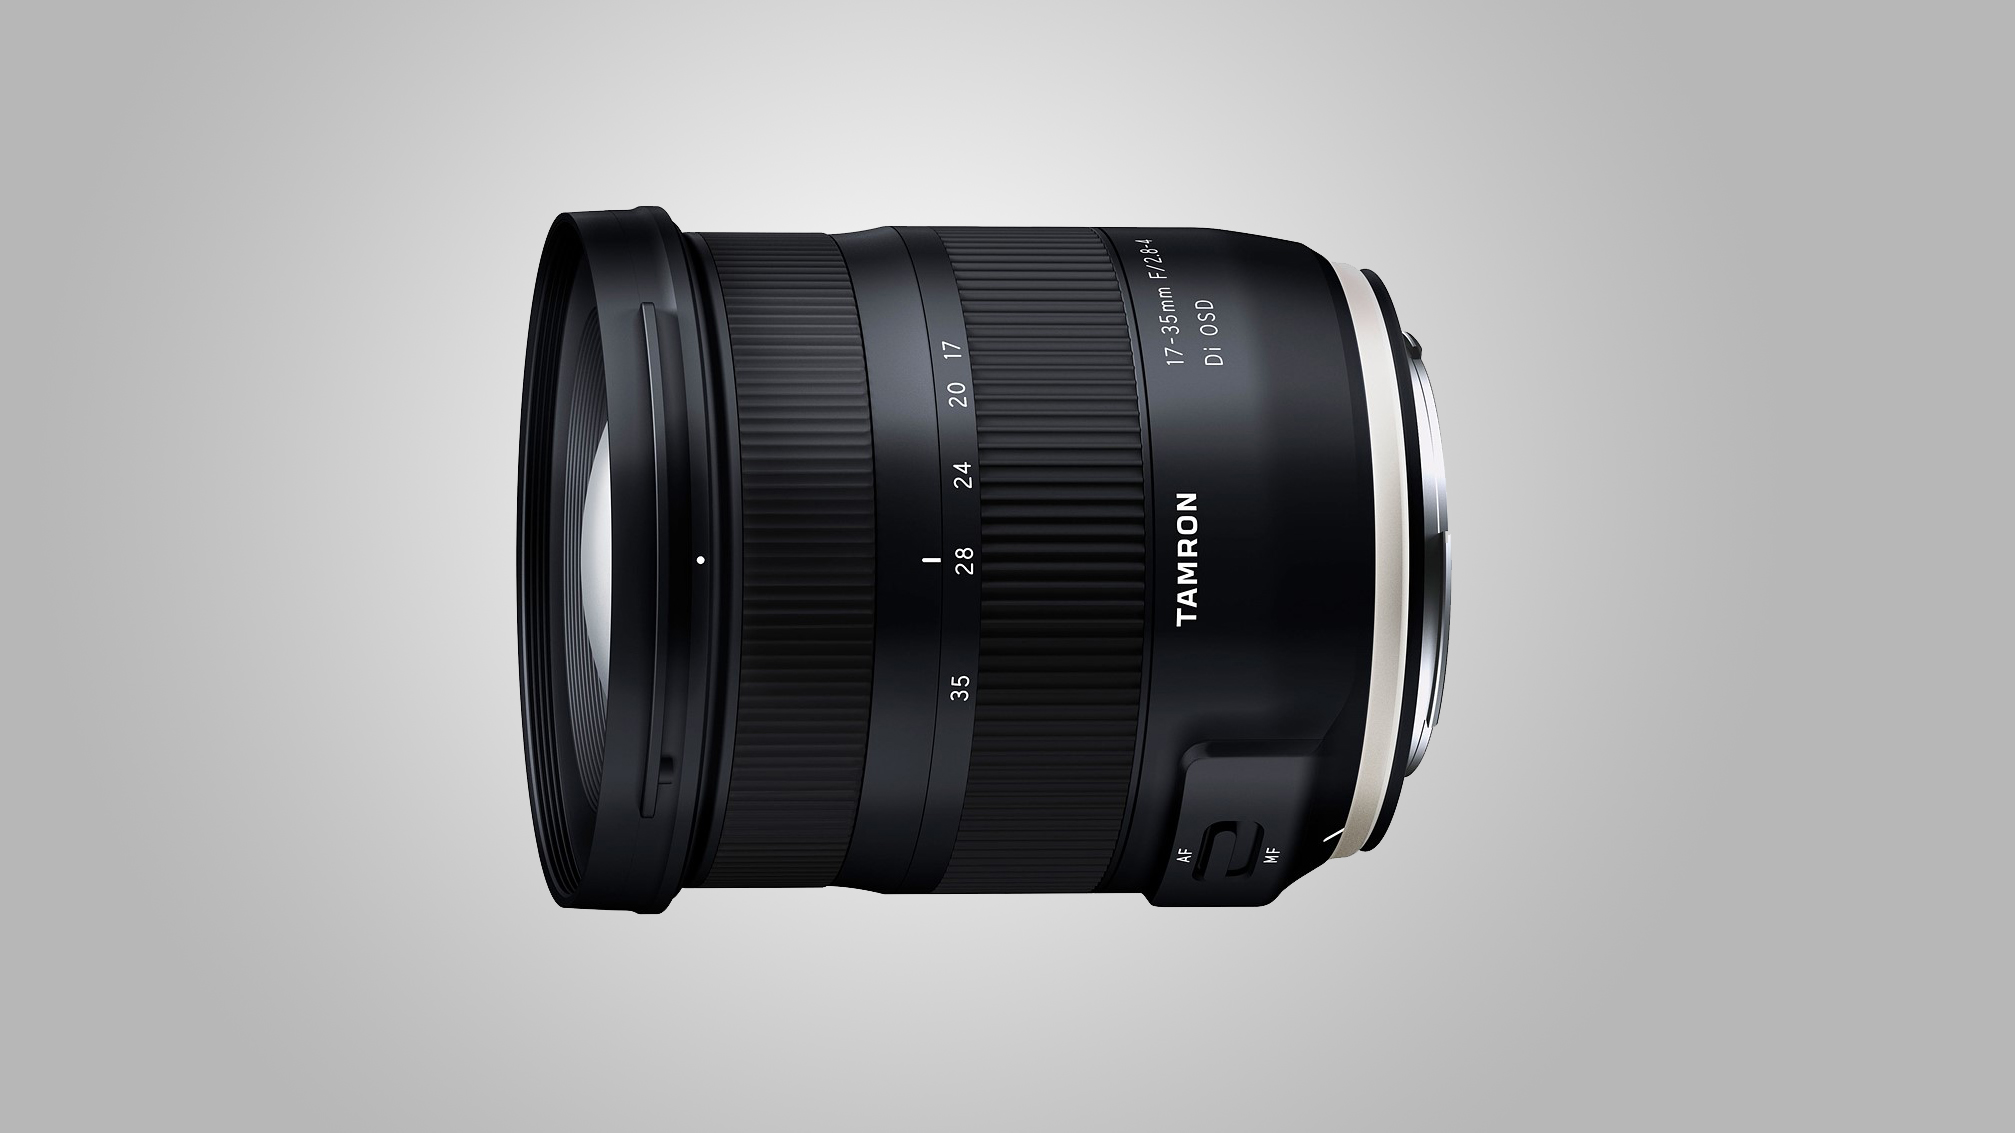 Tamron announces compact and lightweight wide-angle zoom